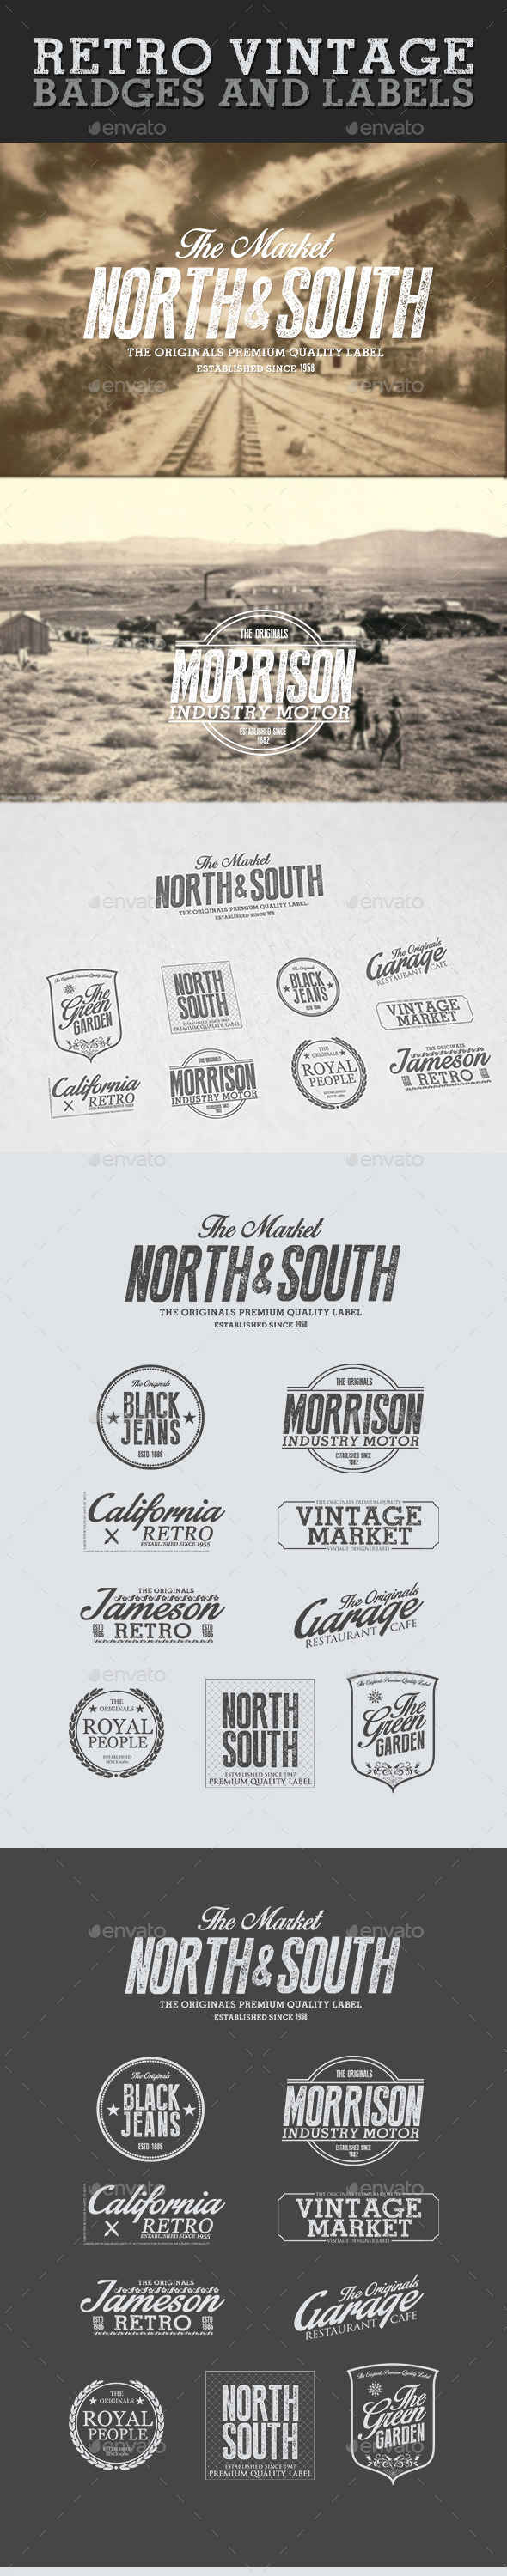 GraphicRiver Retro Vintage Badges and Labels 10202867